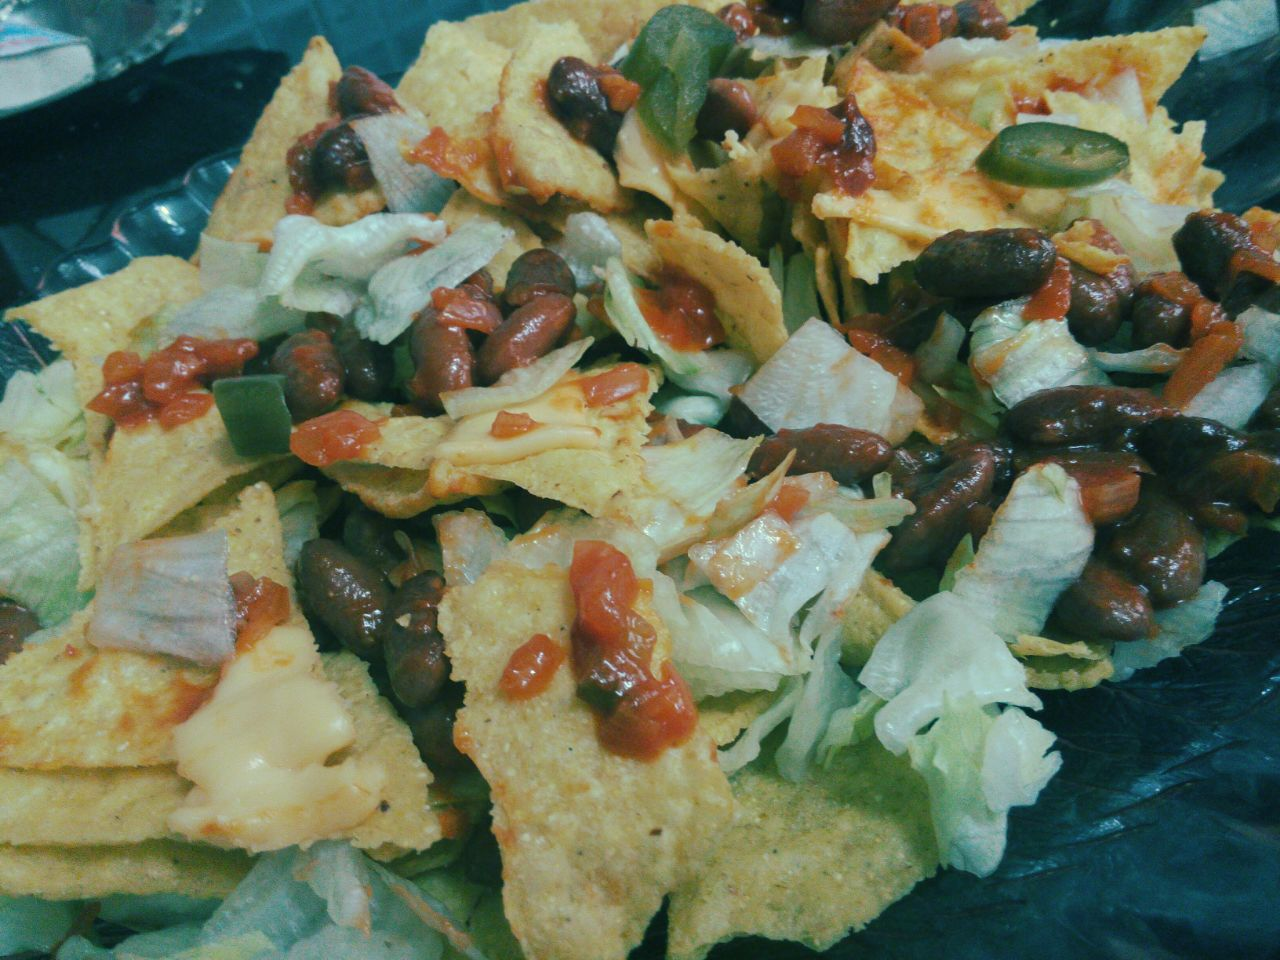 Warm Nacho Salad with Salsa